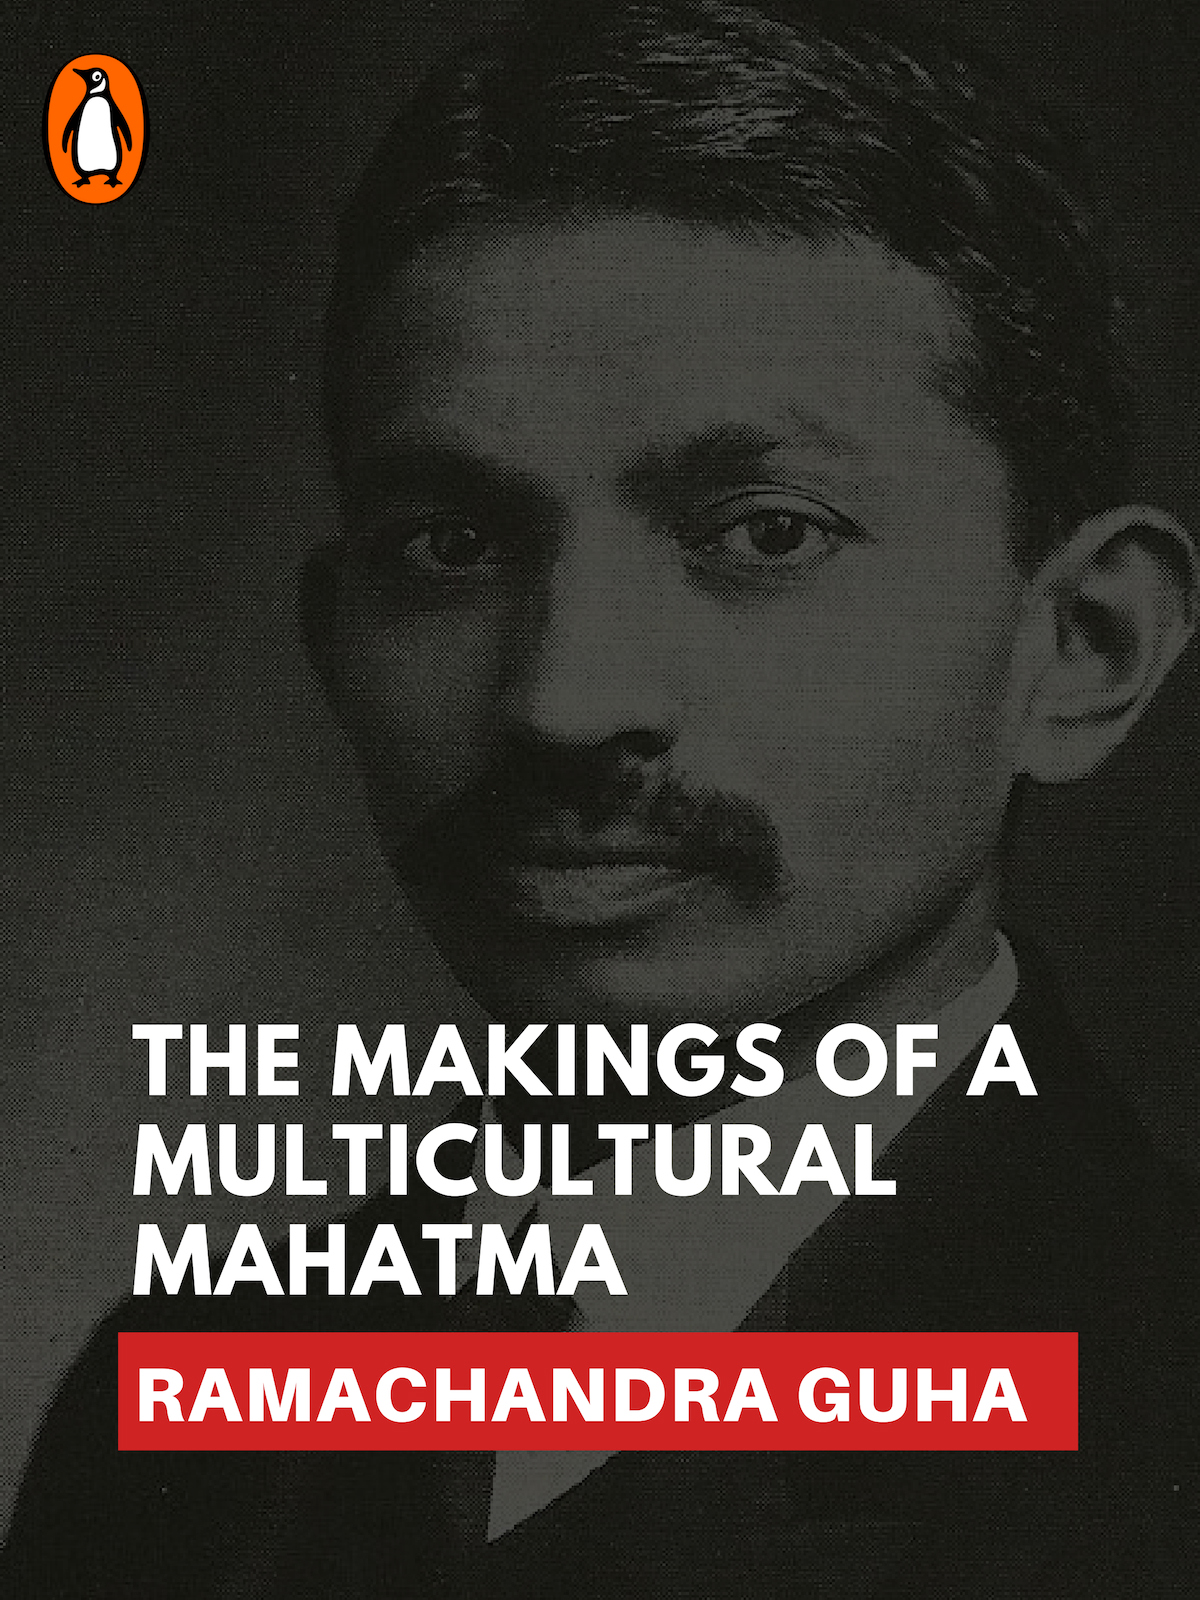 The Makings of a Multicultural Mahatma